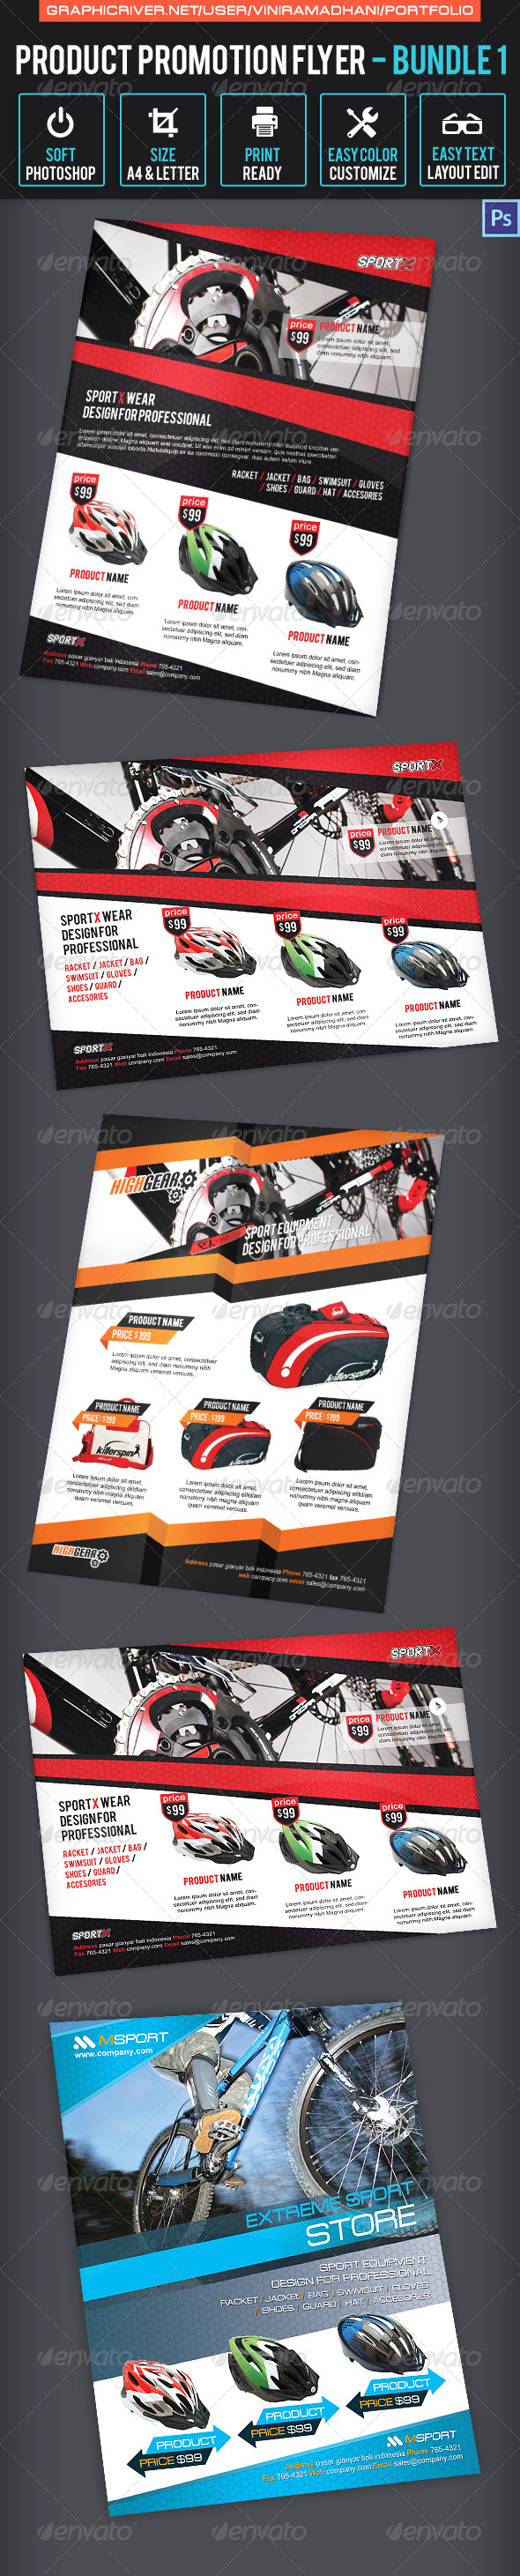 GraphicRiver Product Promotion Flyer Bundle 1 7023454